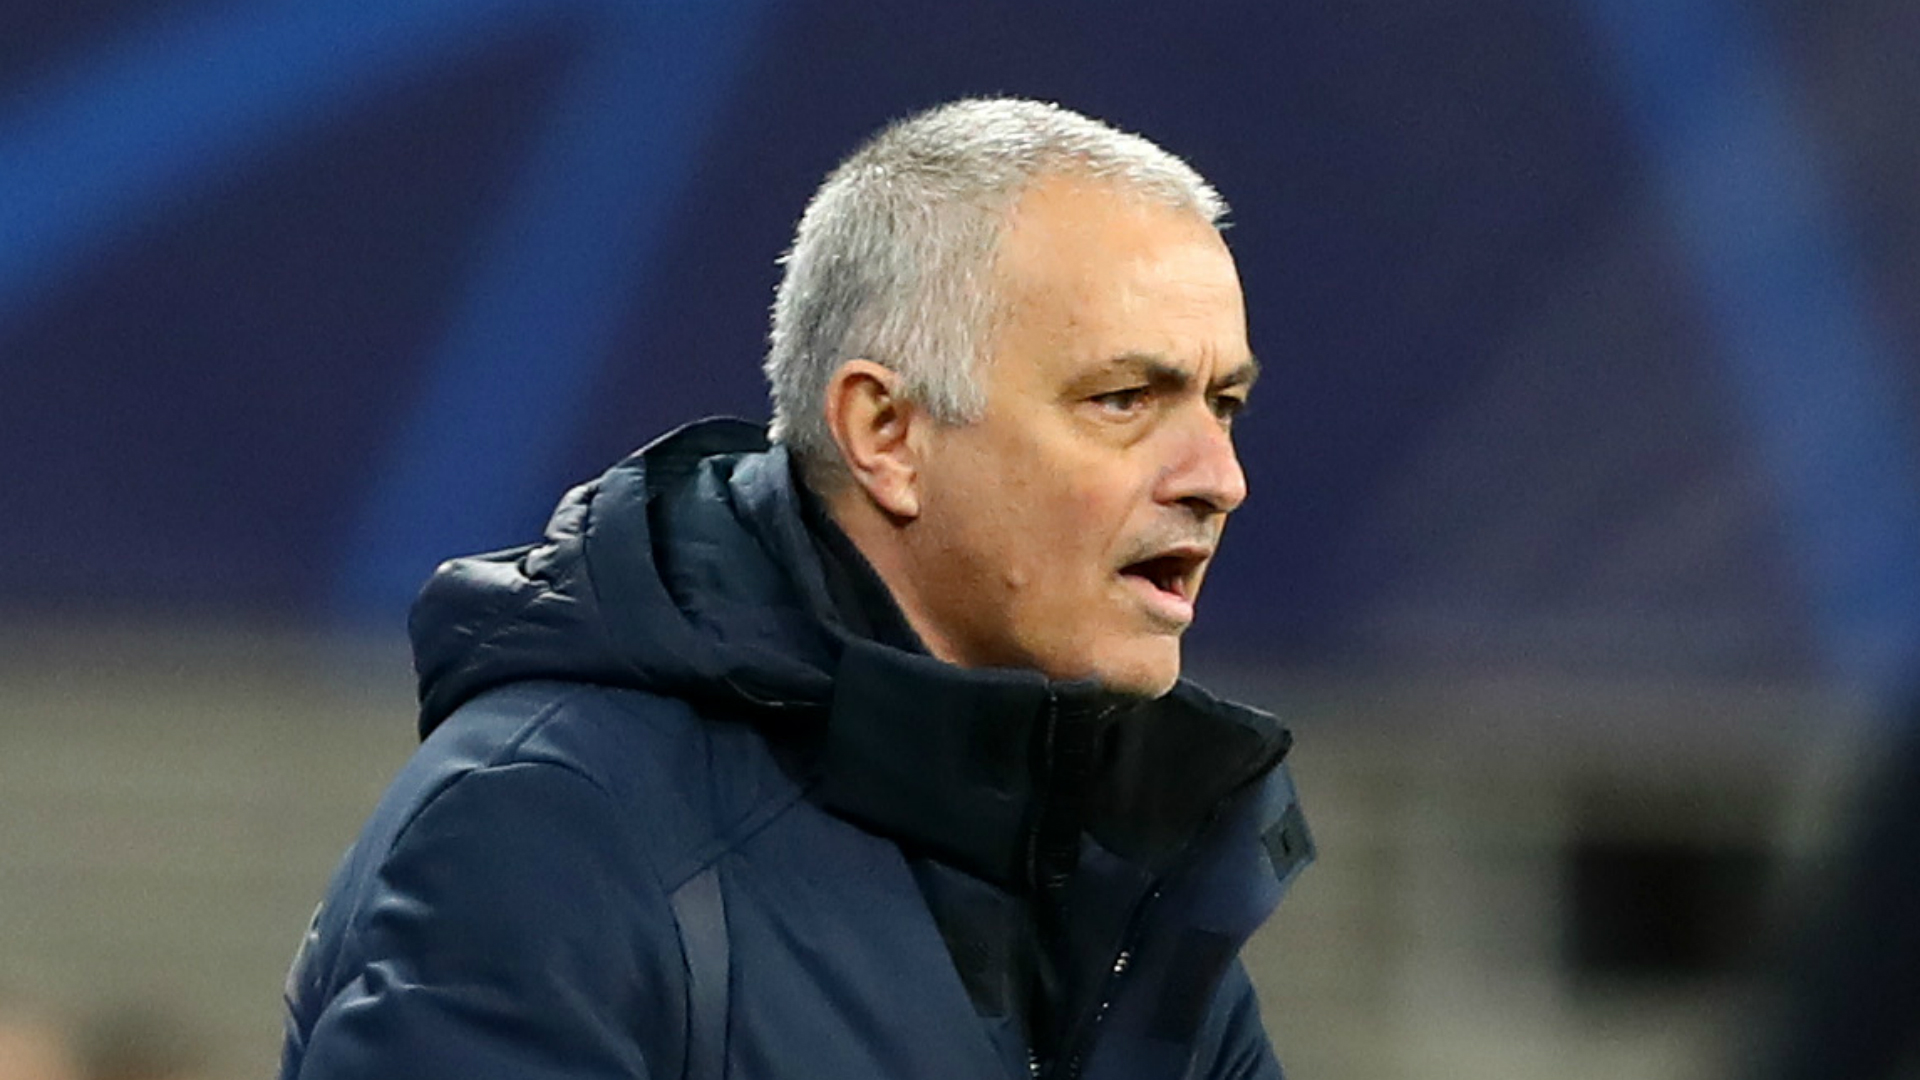 Mourinho admits Tottenham trophy drought could extend beyond his stay